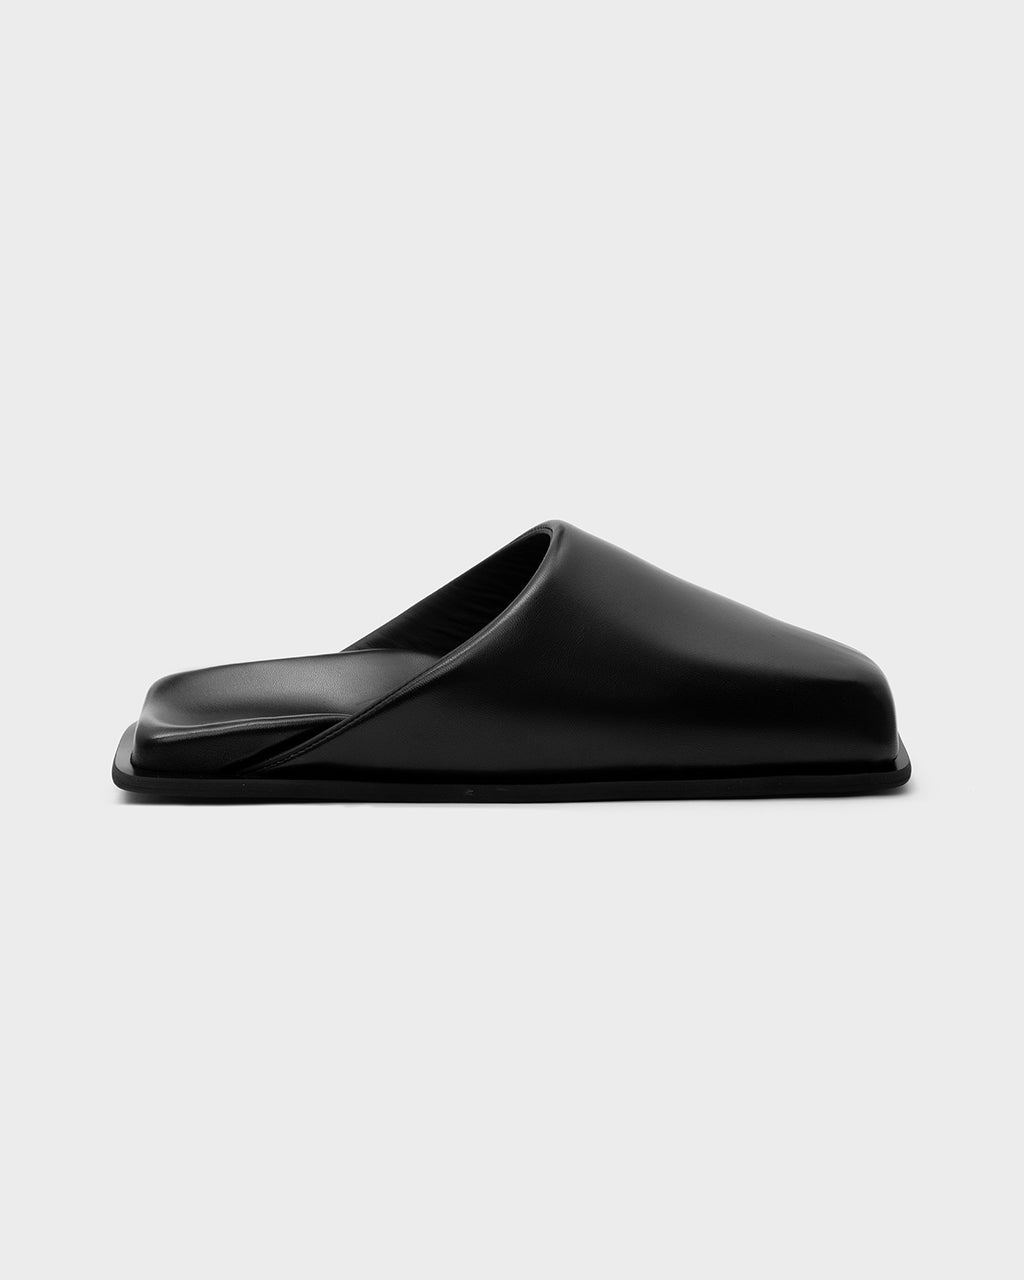 MULES SINGLE SOLE BLACK - SINOBI